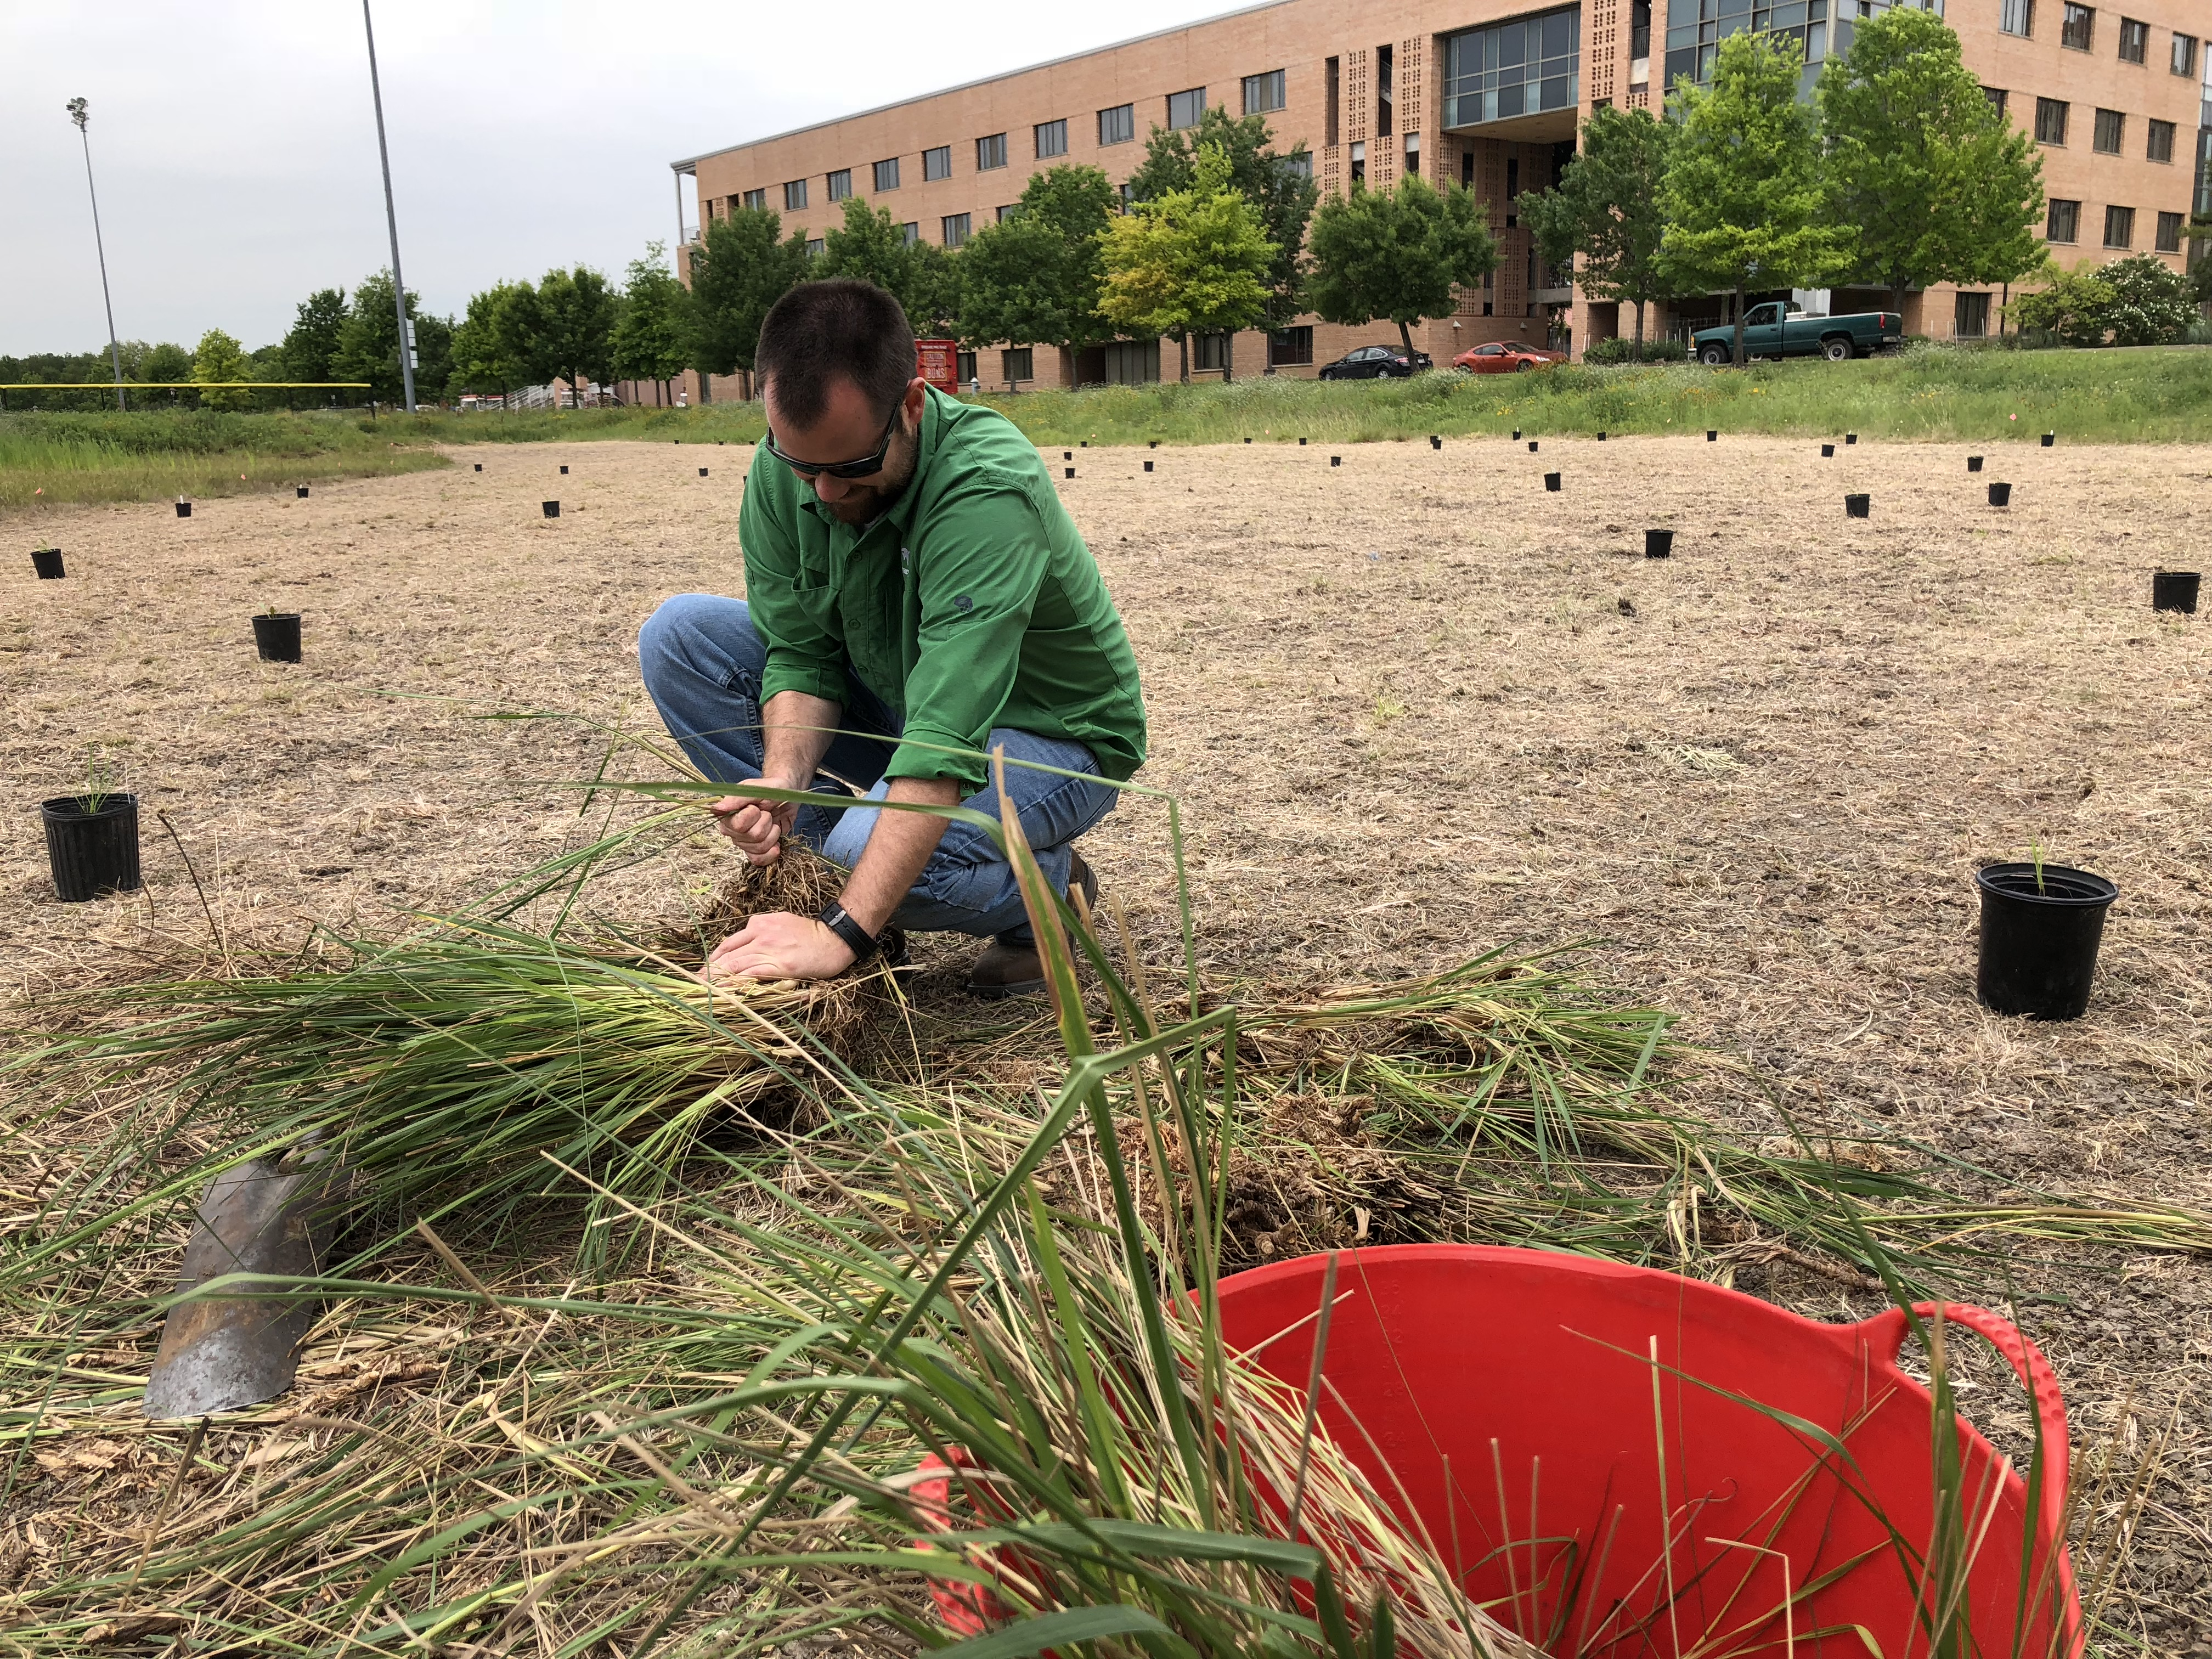 a man in a green shirt kneels on the ground while he plants some native plants